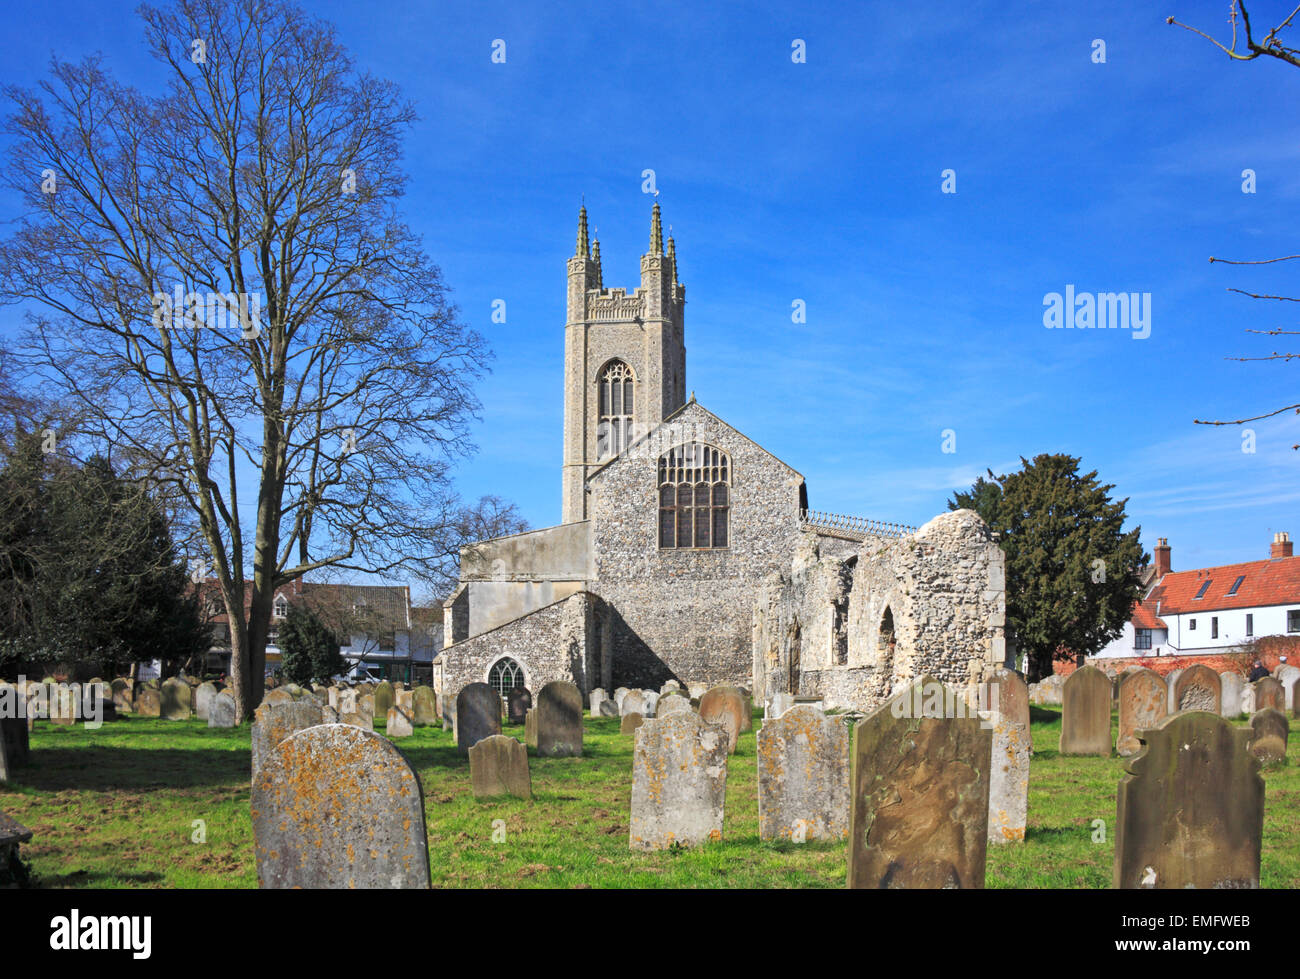 A view of the Priory church of St Mary with monastic ruins at Bungay, Suffolk, England, United Kingdom. - Stock Image